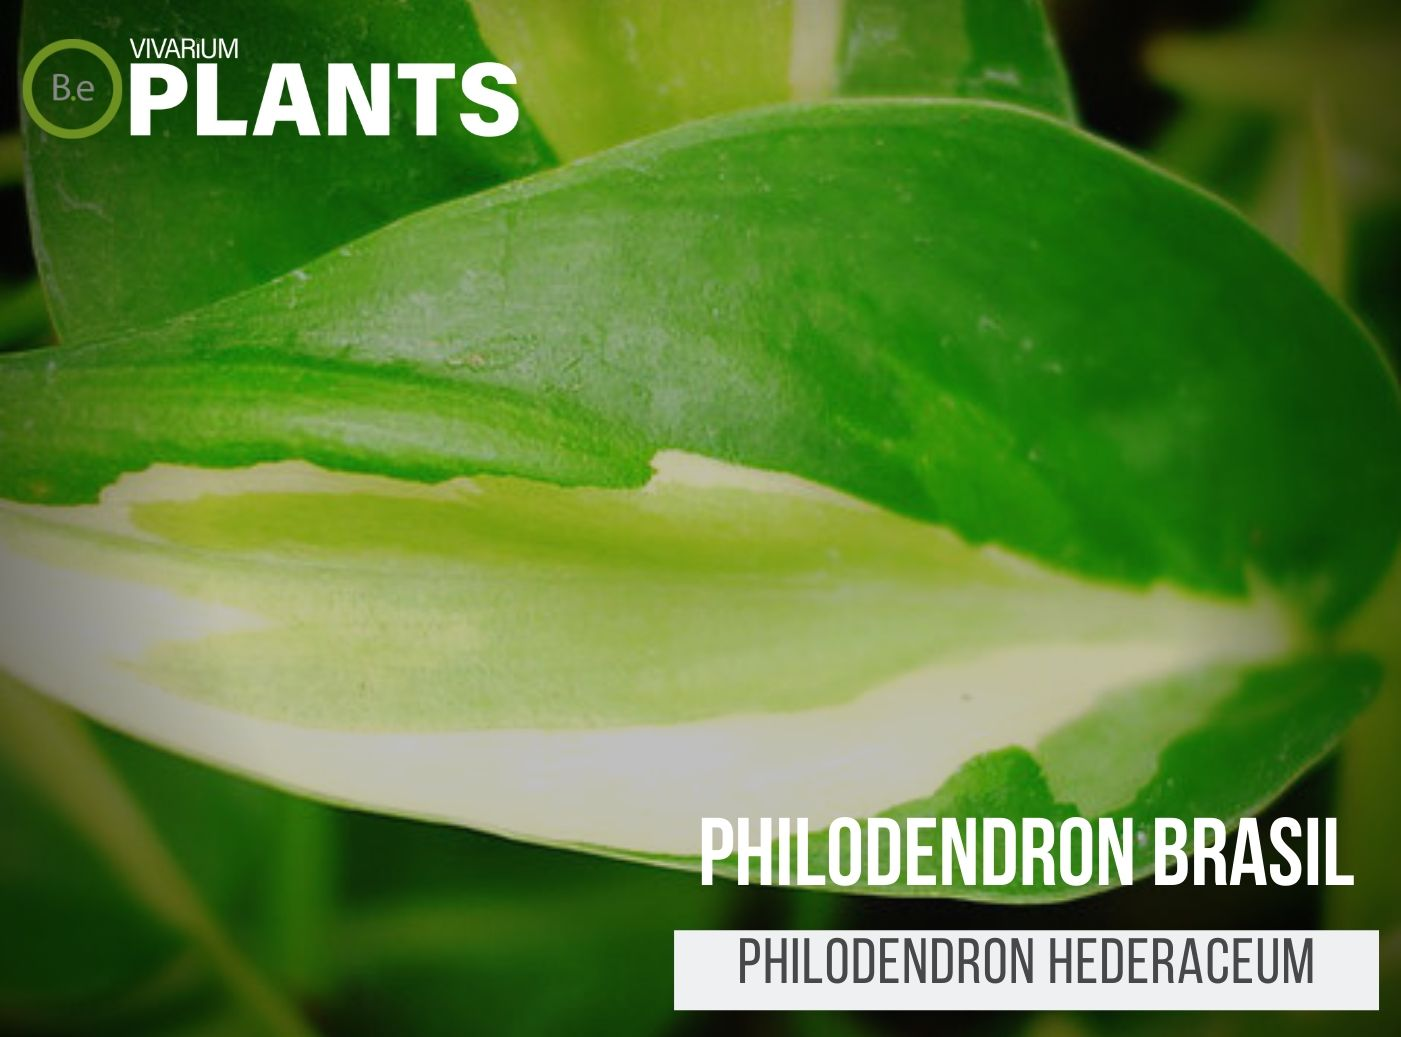 Philodendron Brasil (Philodendron Hederaceum)